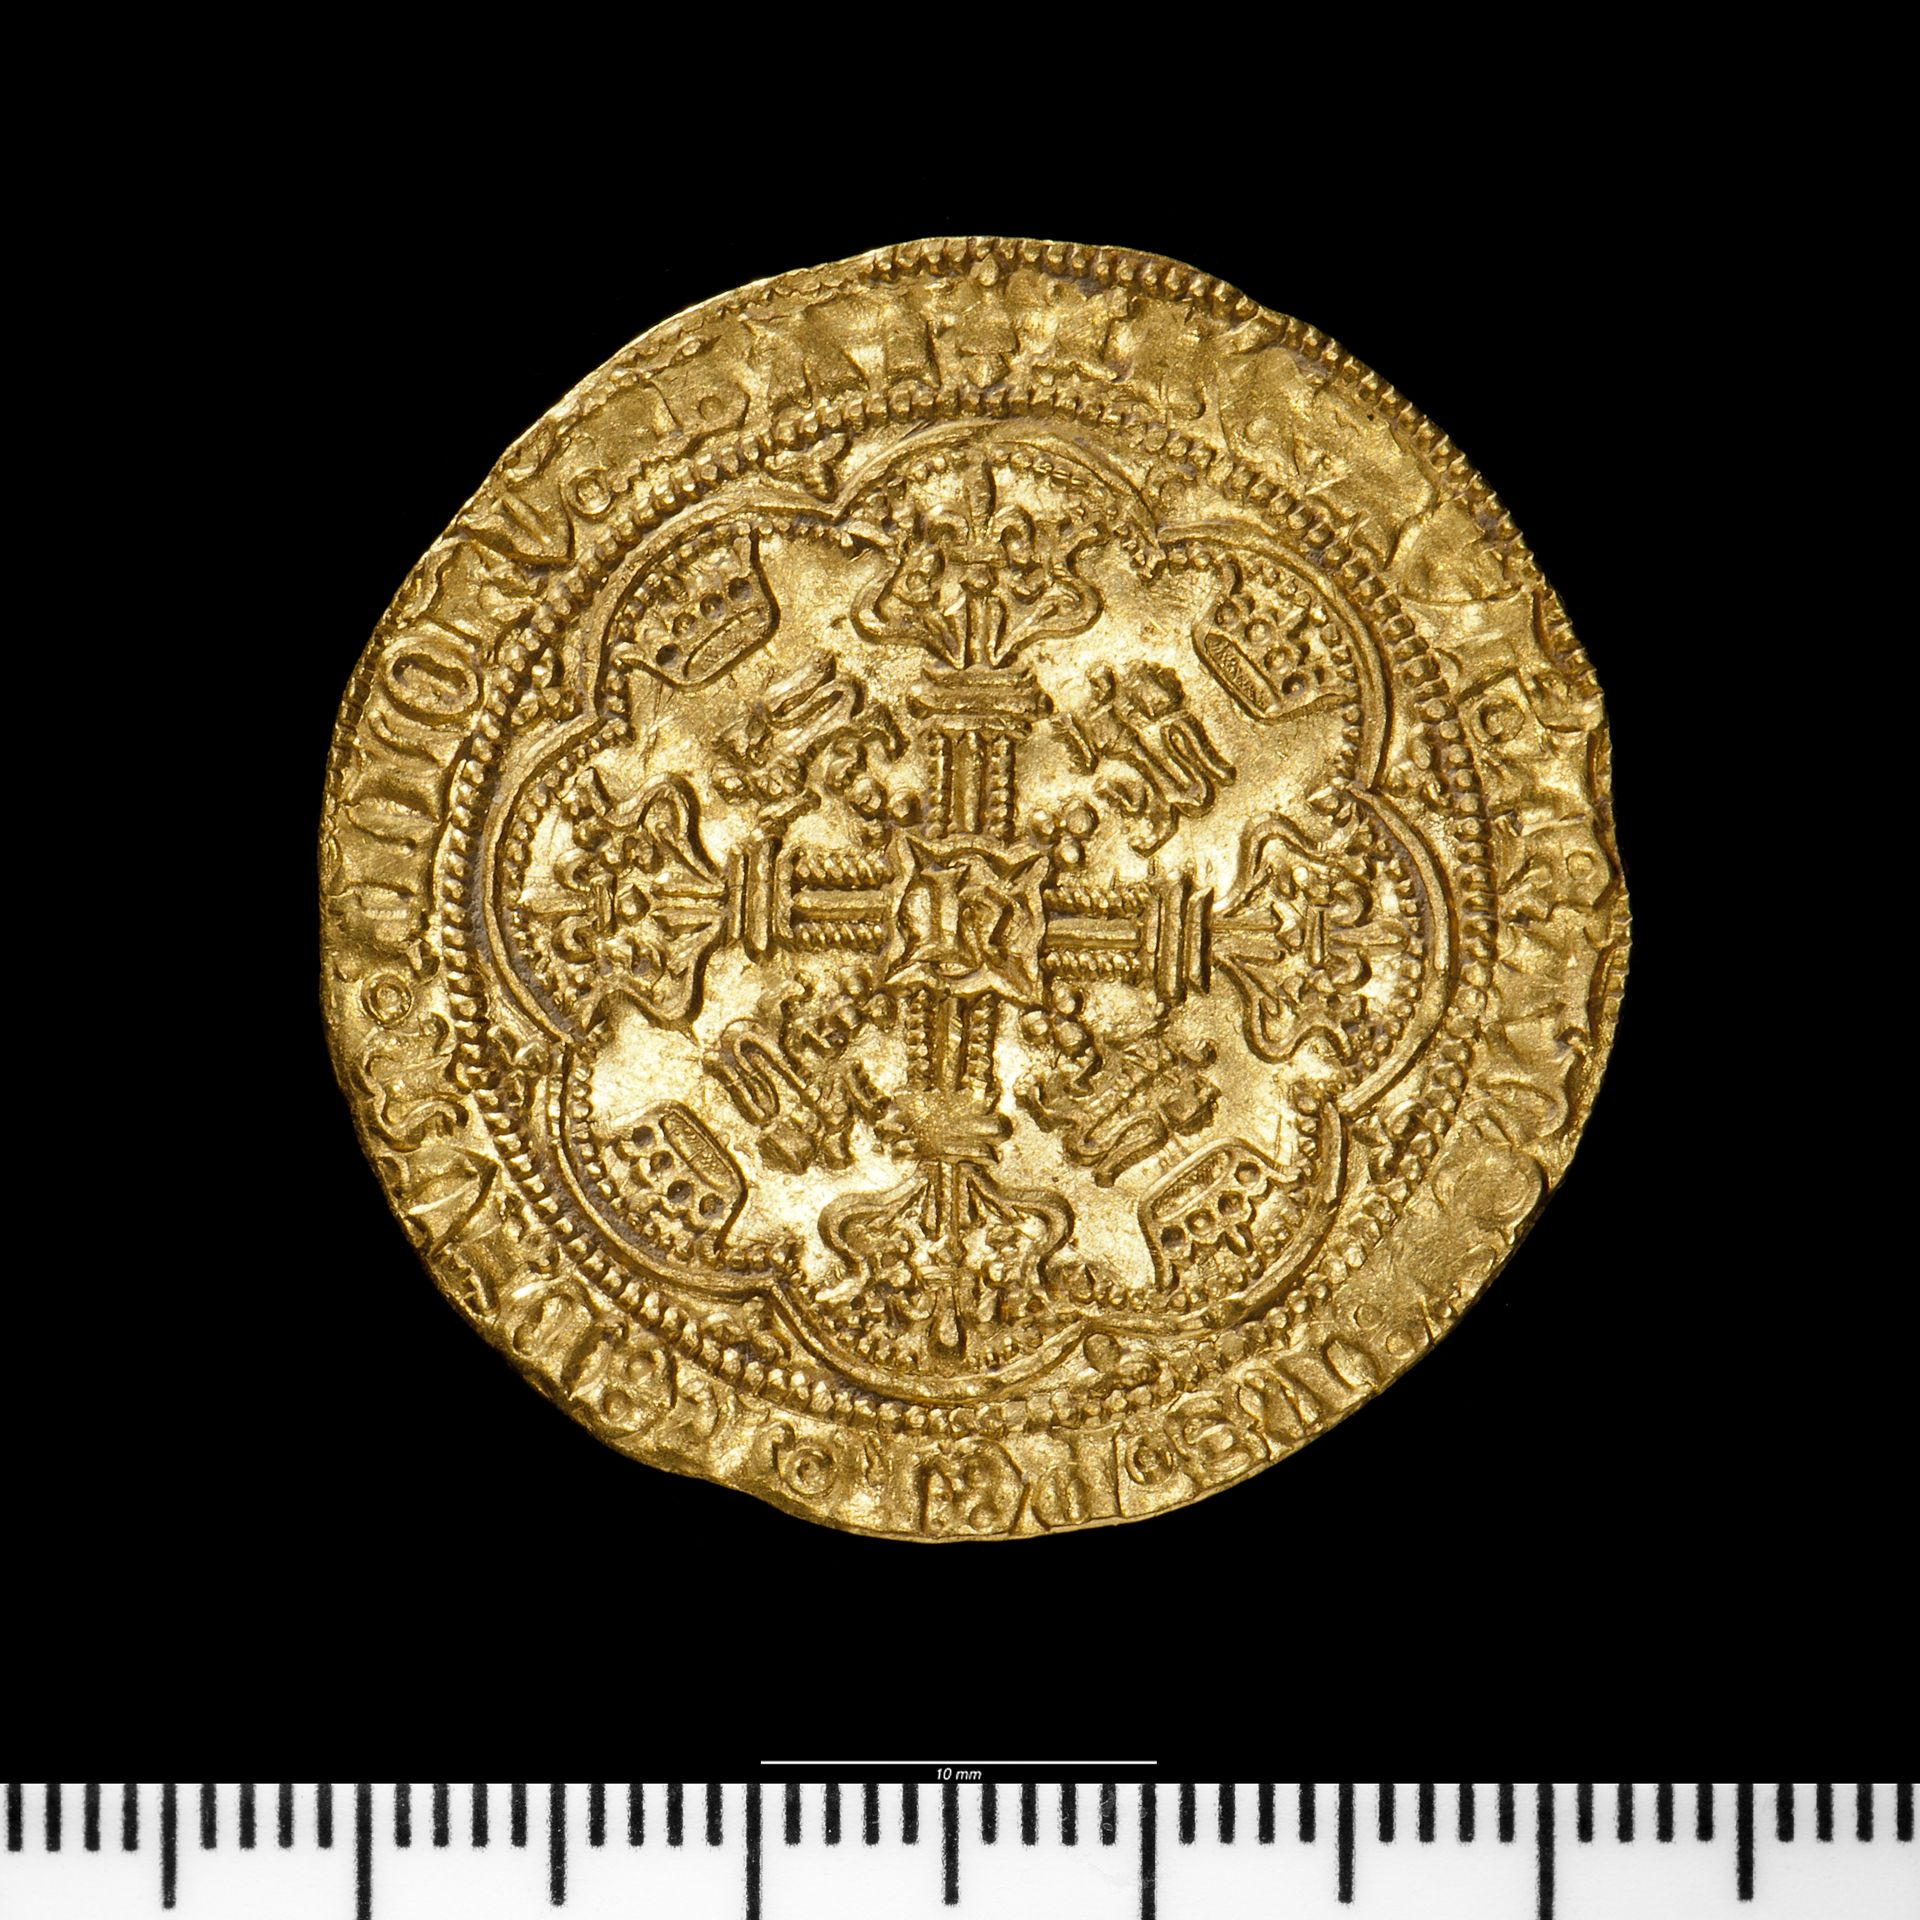 A picture of a medieval gold coin